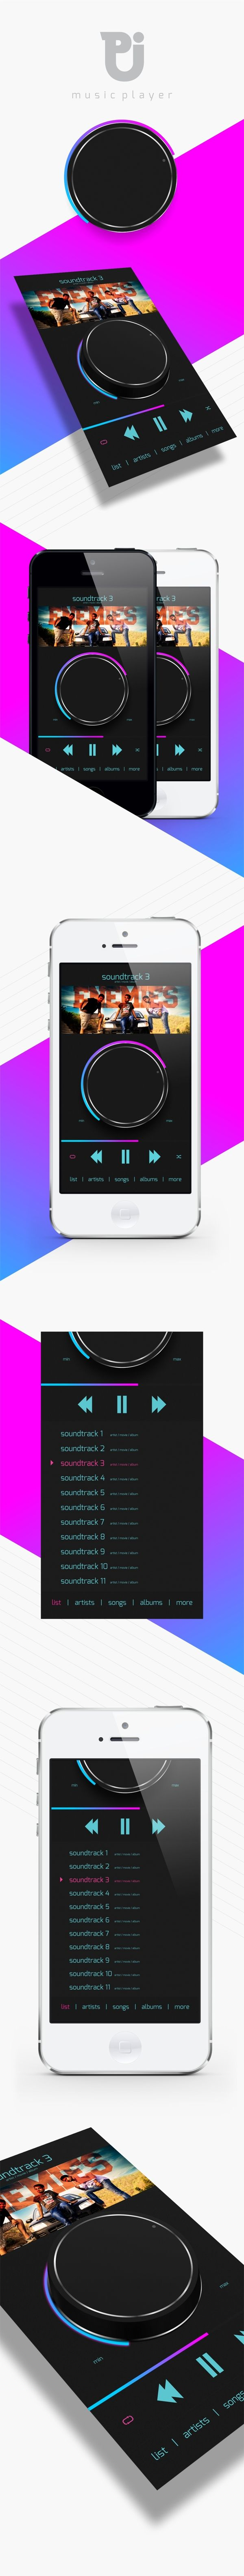 CONCEPT - iOS MUSIC PLAYER by Pintu Dhiman, via Behance *** #app #iphone #ios #gui #ui #player #behance